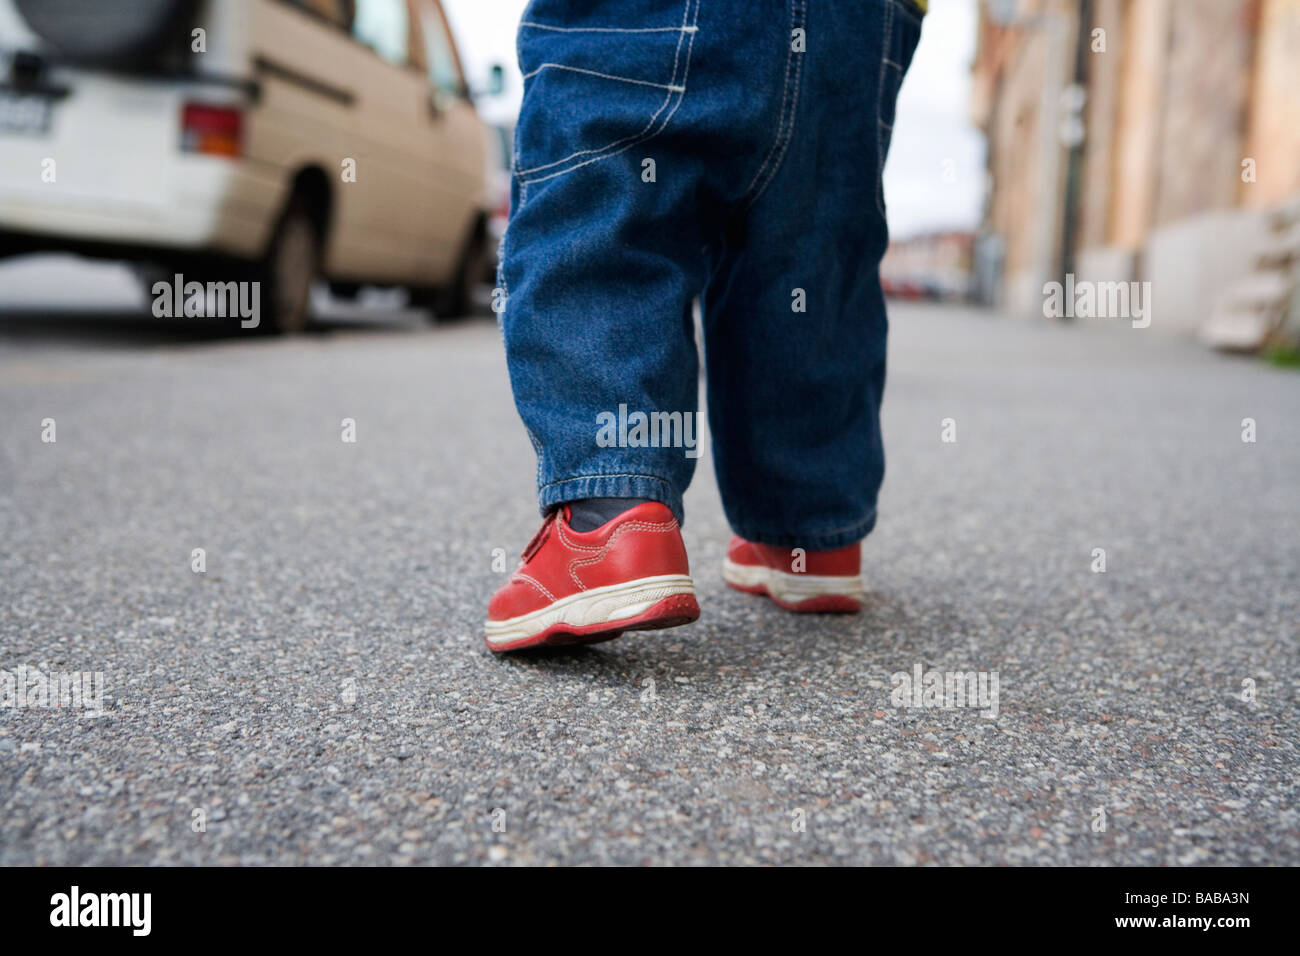 The legs of a child walking Sweden. - Stock Image